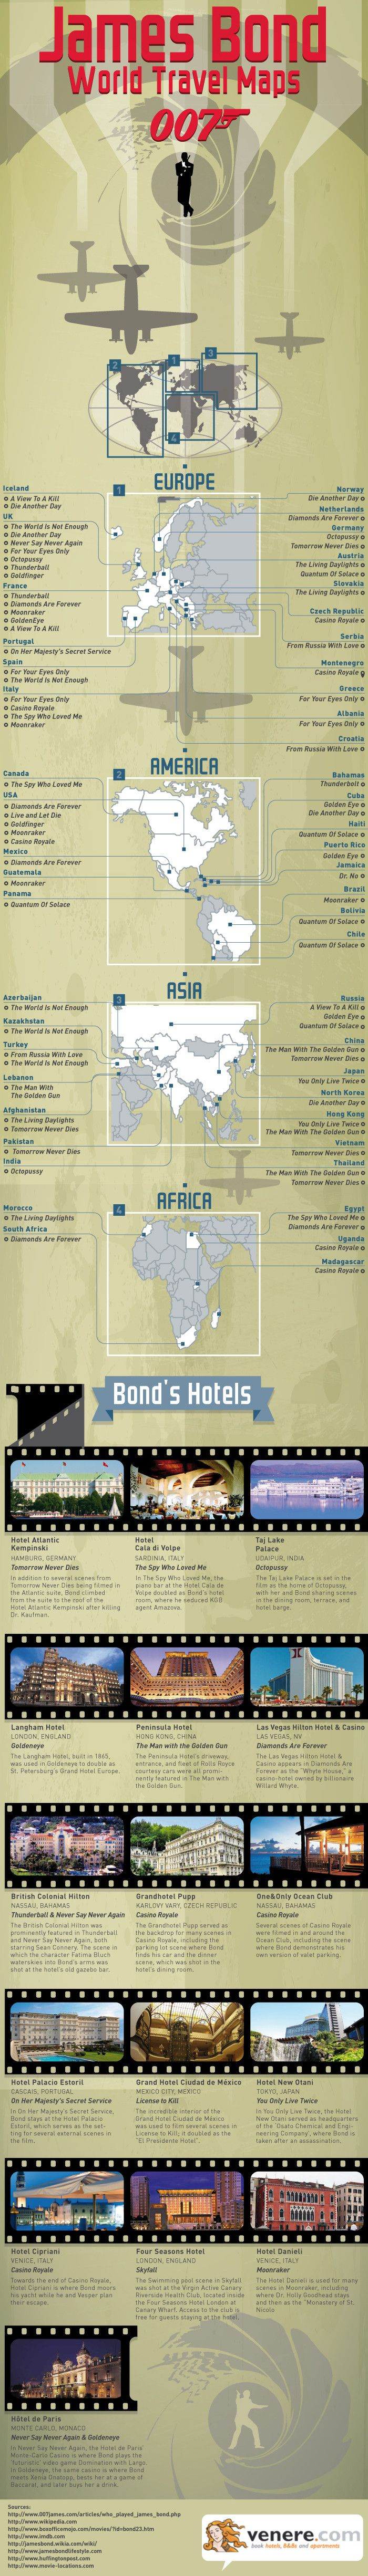 James Bond World Travel Maps